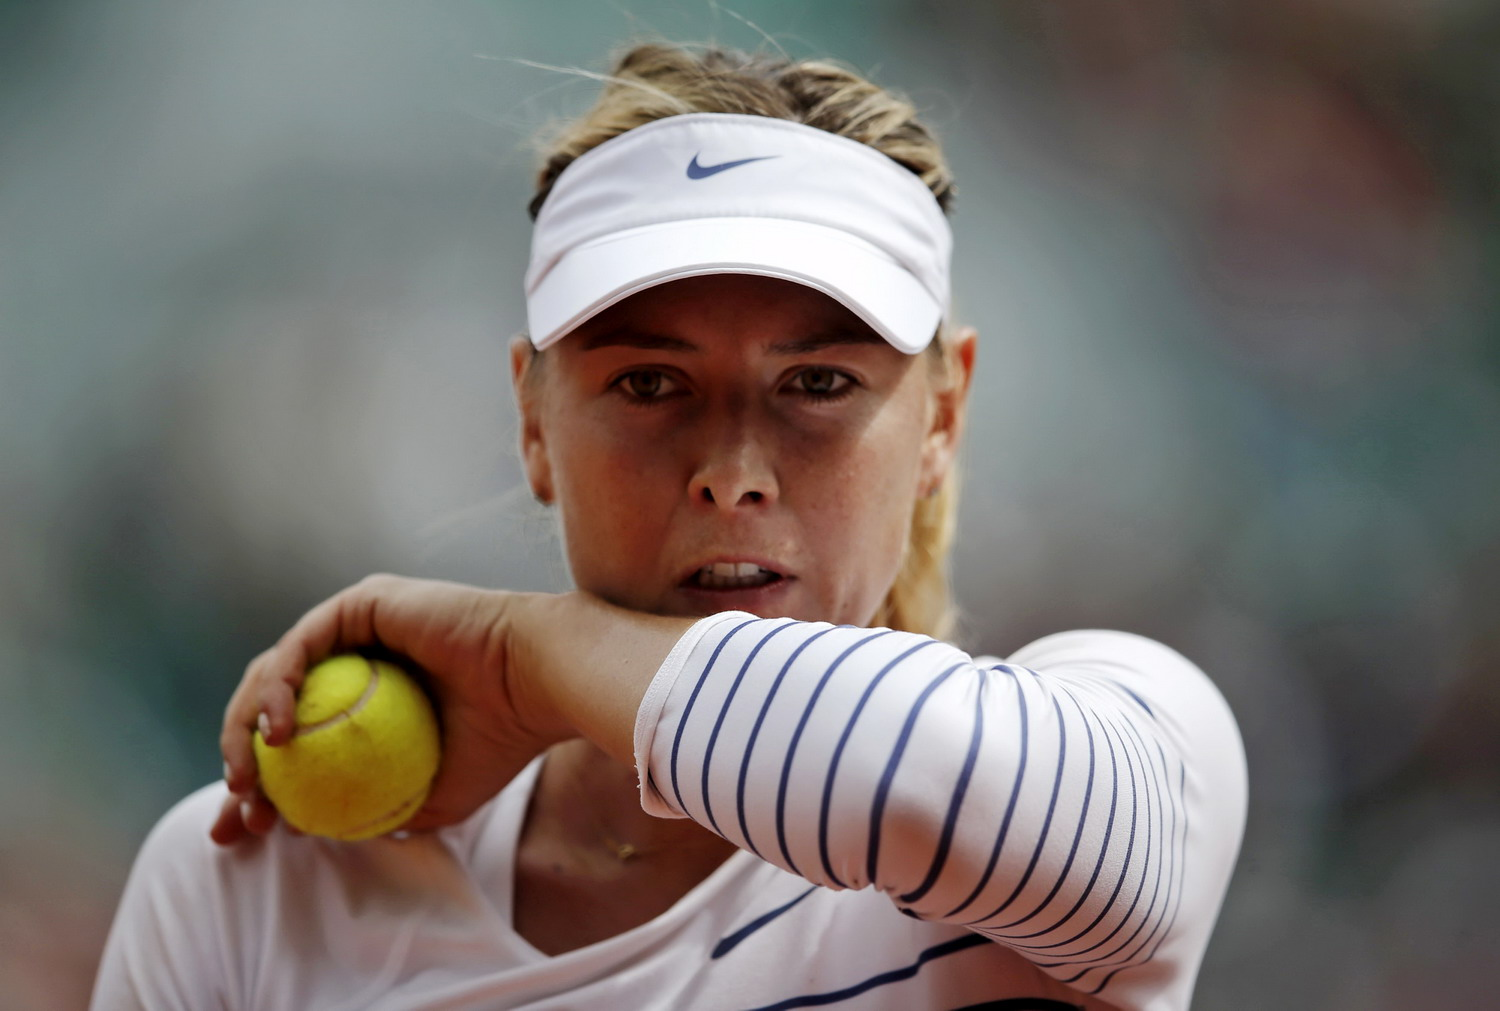 Sharapova fails drug test, Nike suspends ties